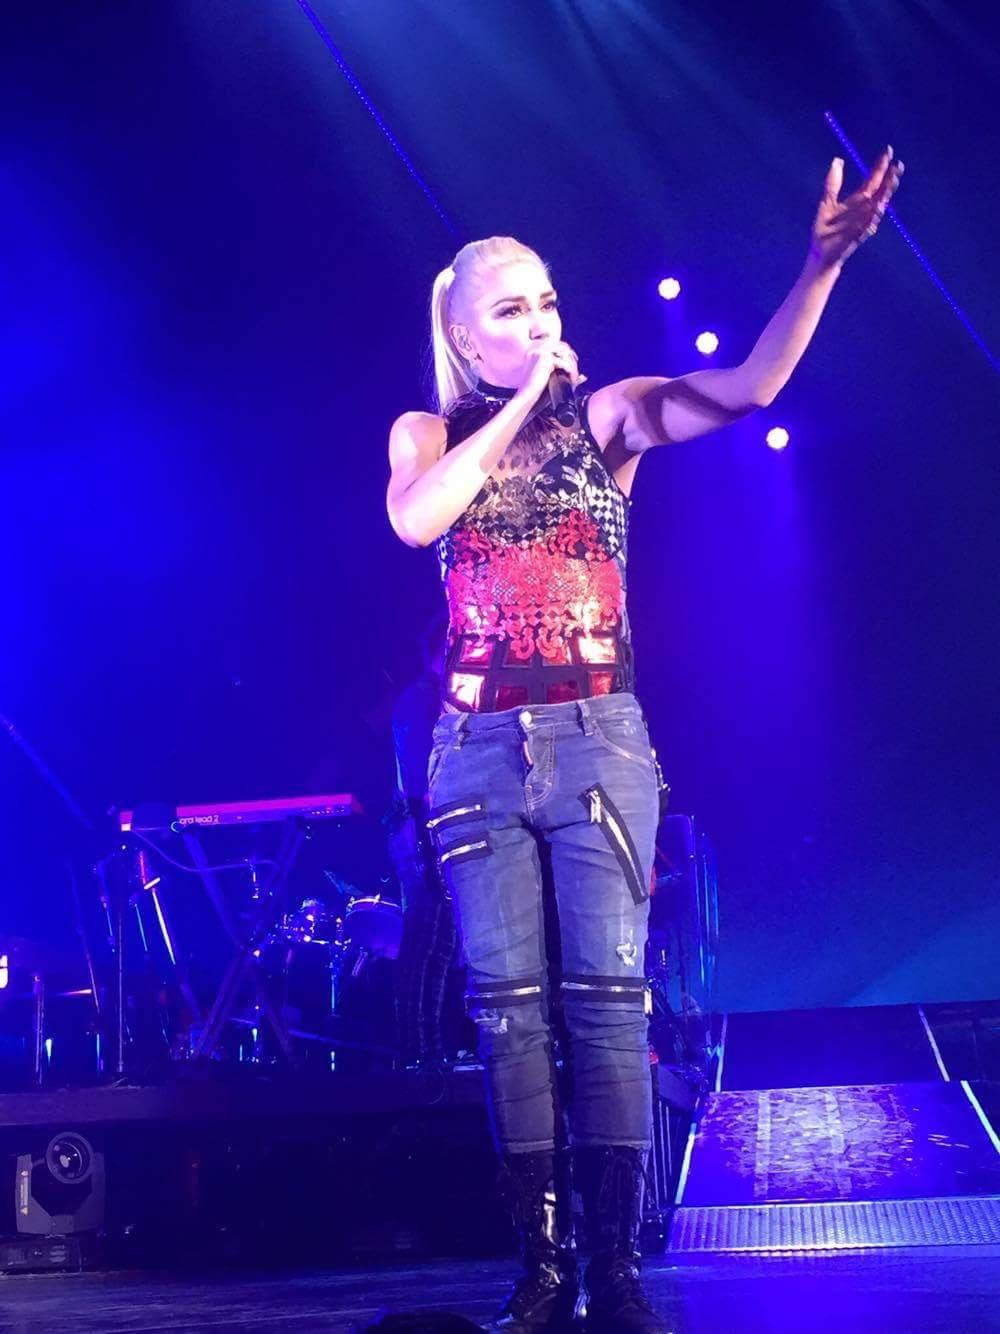 Singer Gwen Stefani performed at the last show in the Amphitheater.